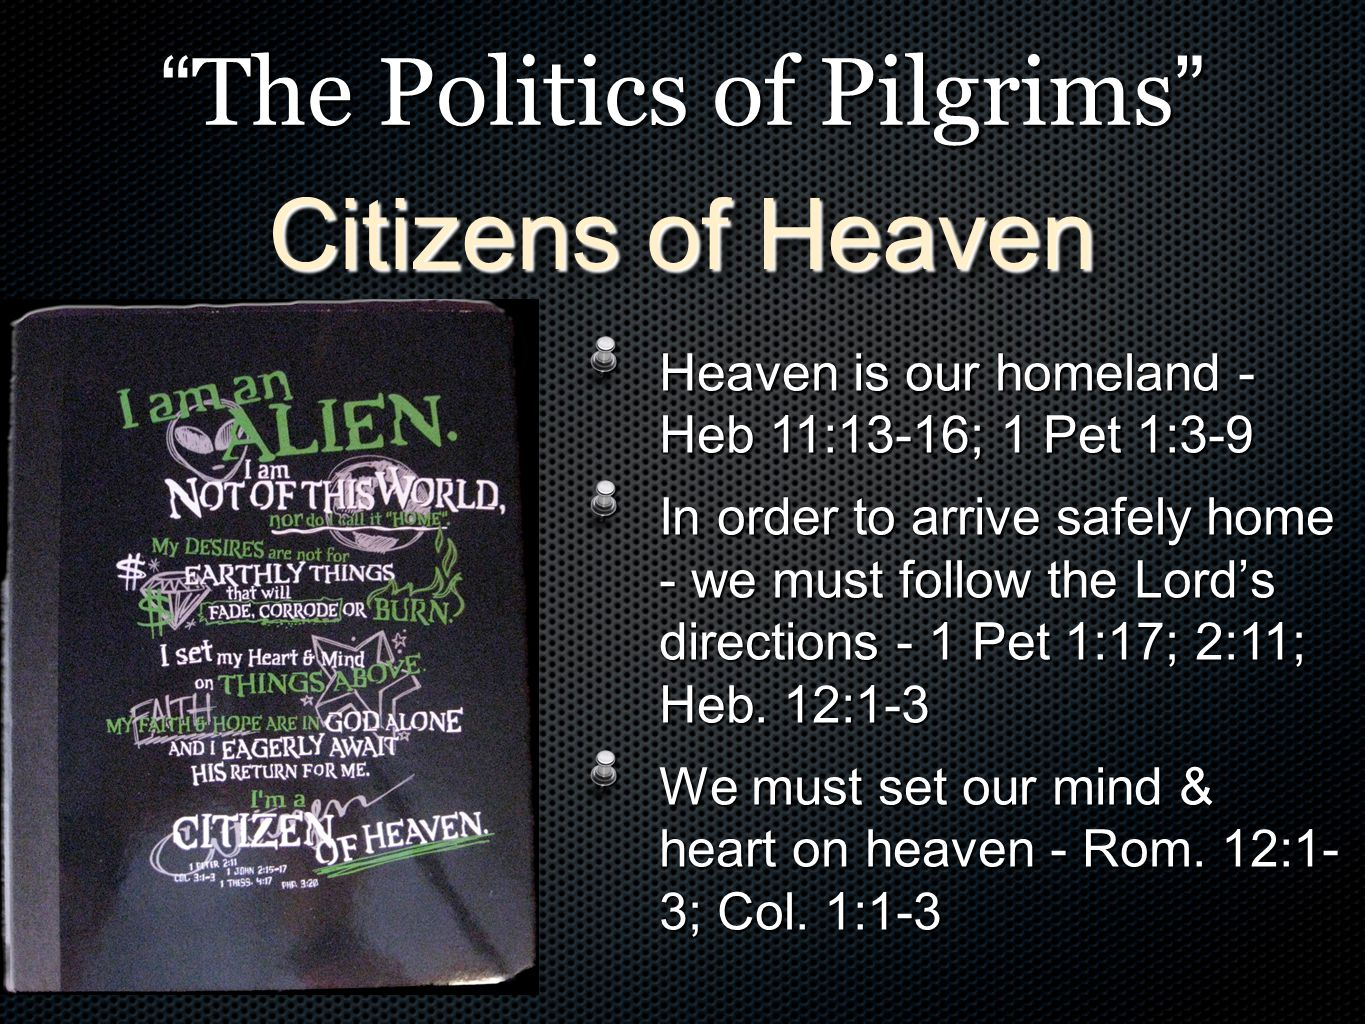 """"""" The Politics of Pilgrims """" Heaven is our homeland - Heb 11:13-16; 1 Pet 1:3-9 In order to arrive safely home - we must follow the Lord's directions"""